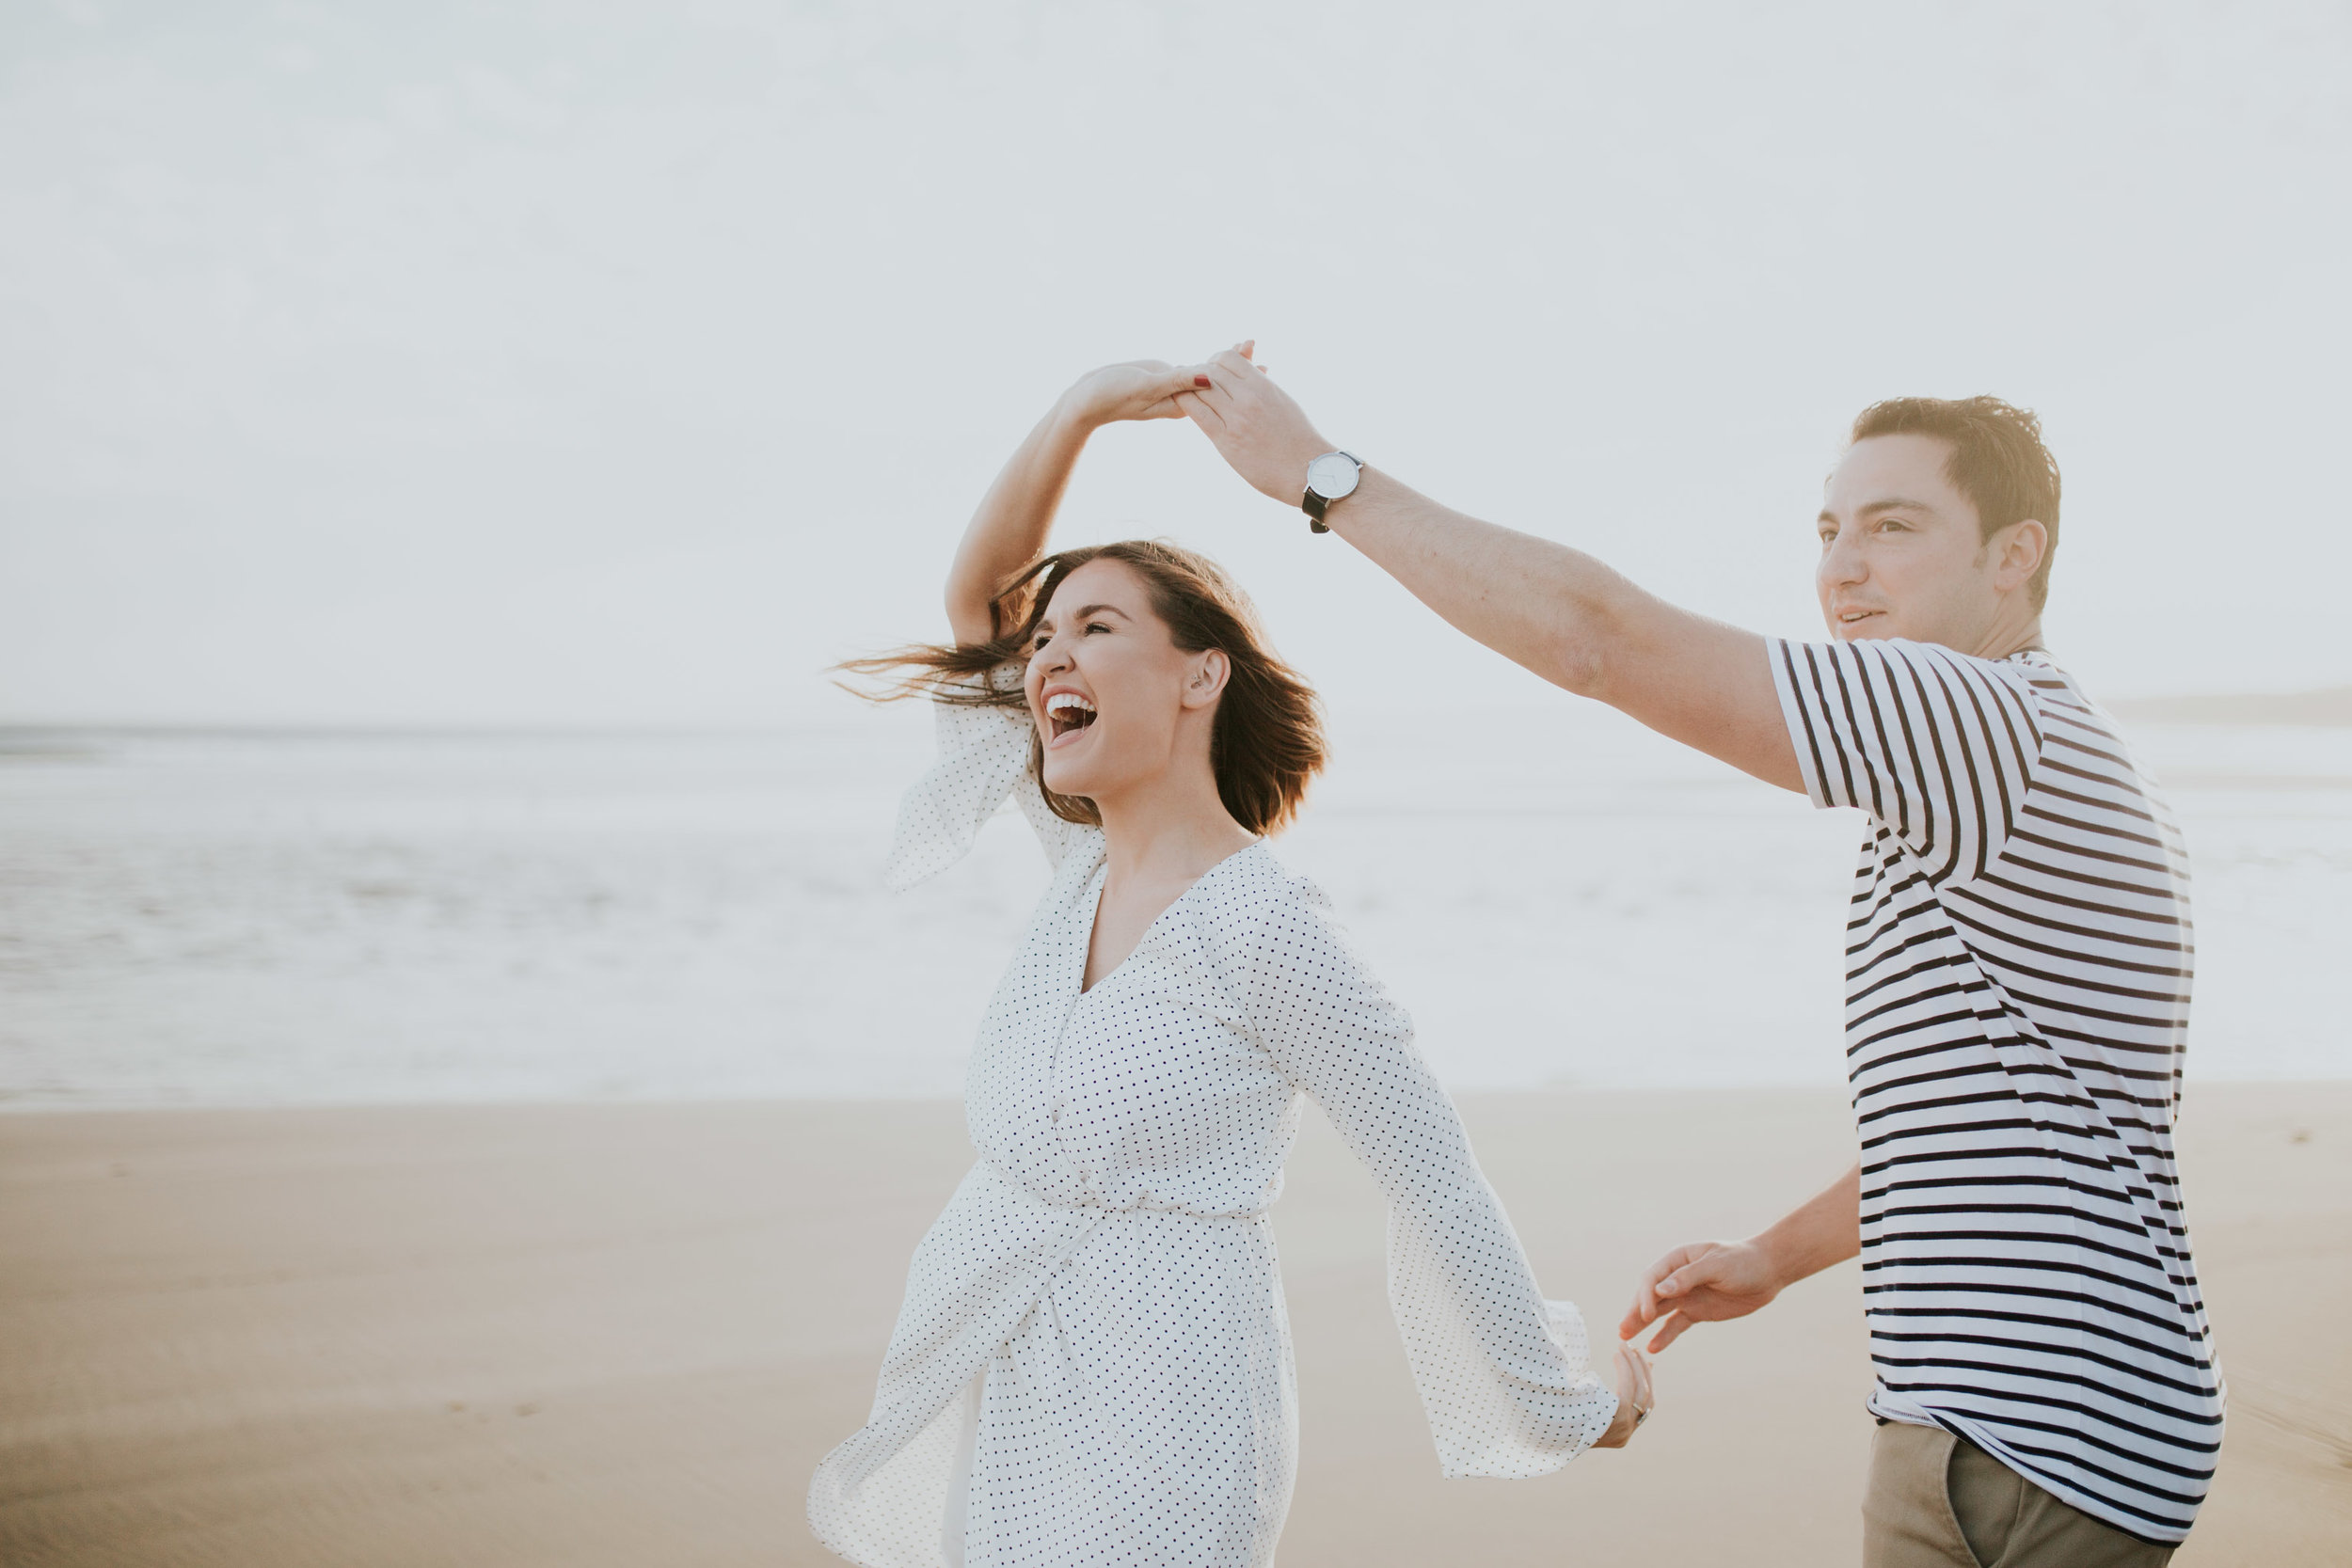 Kristen+Daniel+Engagement+Session+Portraits+Kiama+Beach-22.jpg